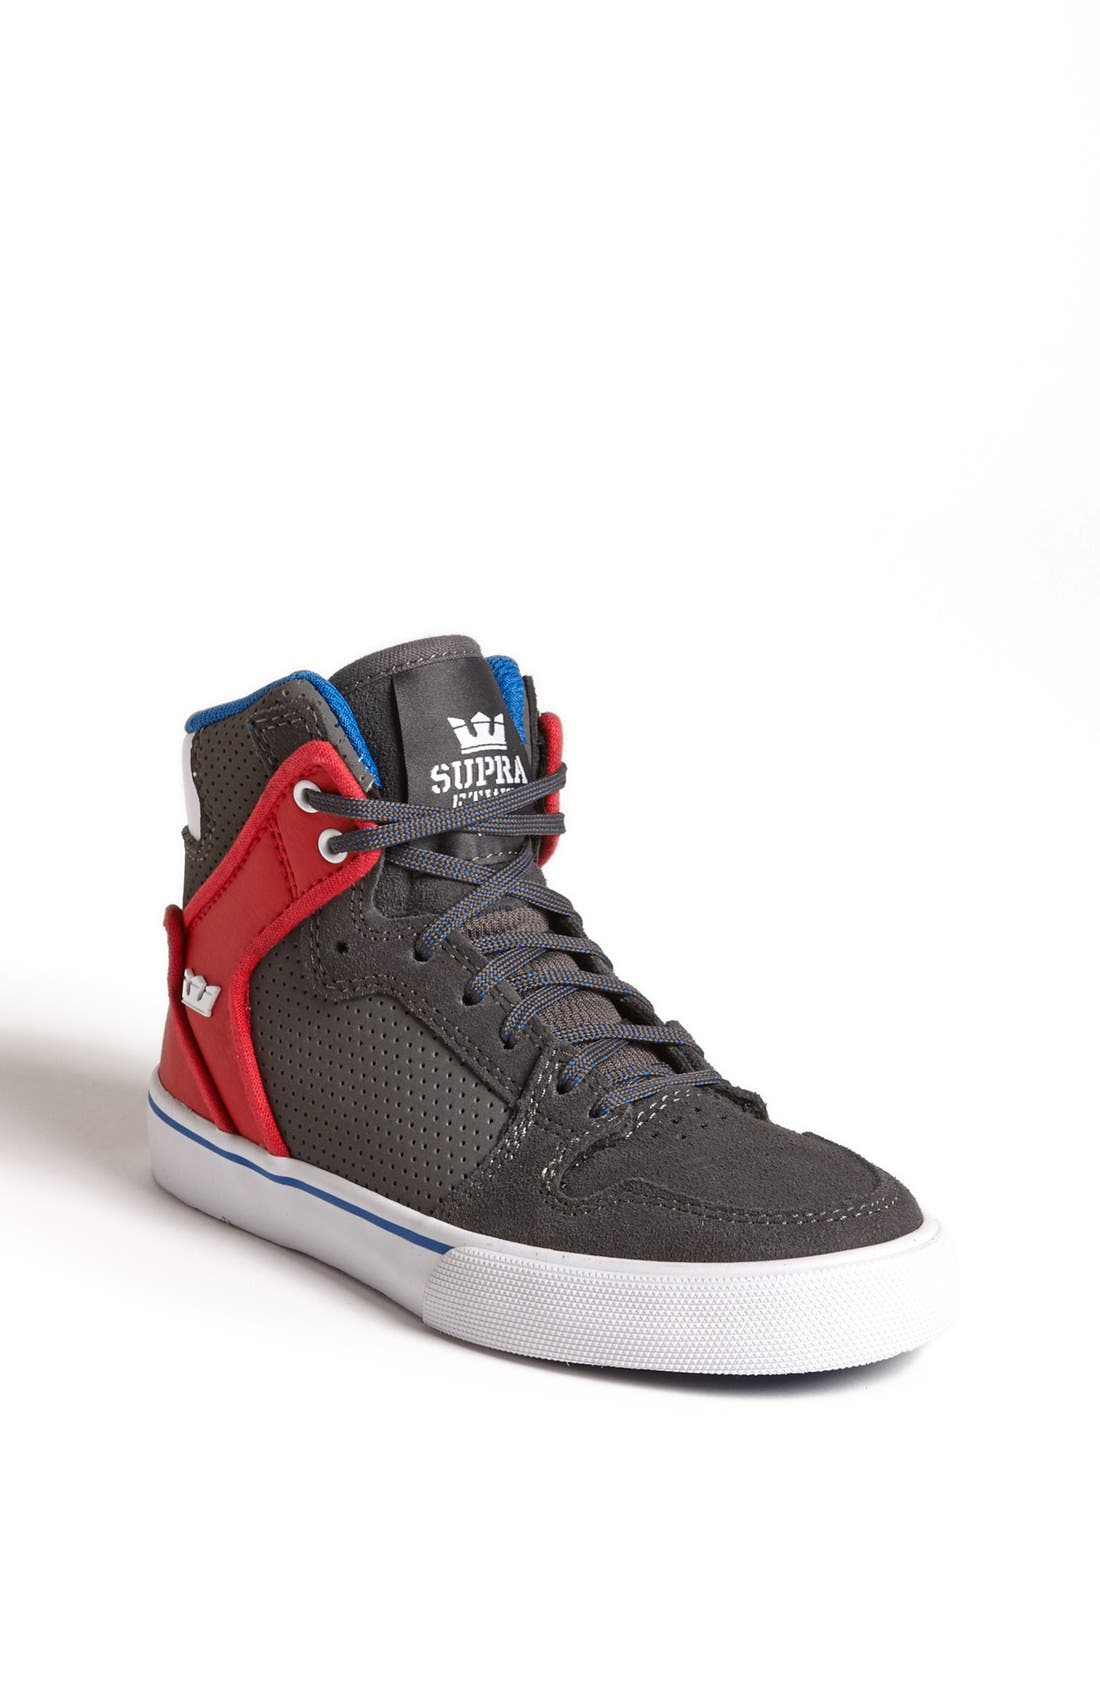 Main Image - Supra 'Vaider' Sneaker (Toddler, Little Kid & Big Kid)